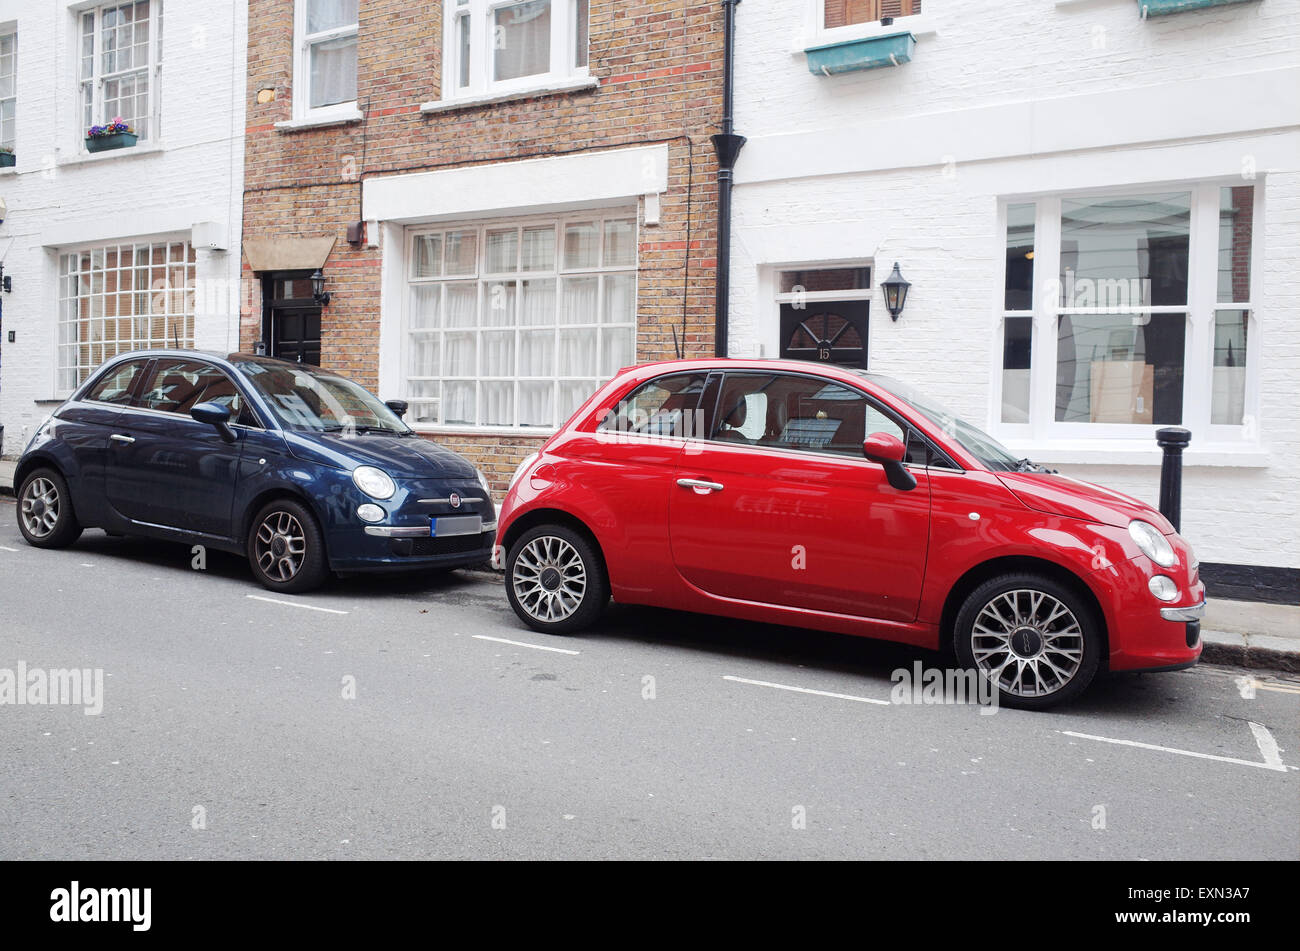 Red Fiat 500 car parked in London England 2015 - Stock Image